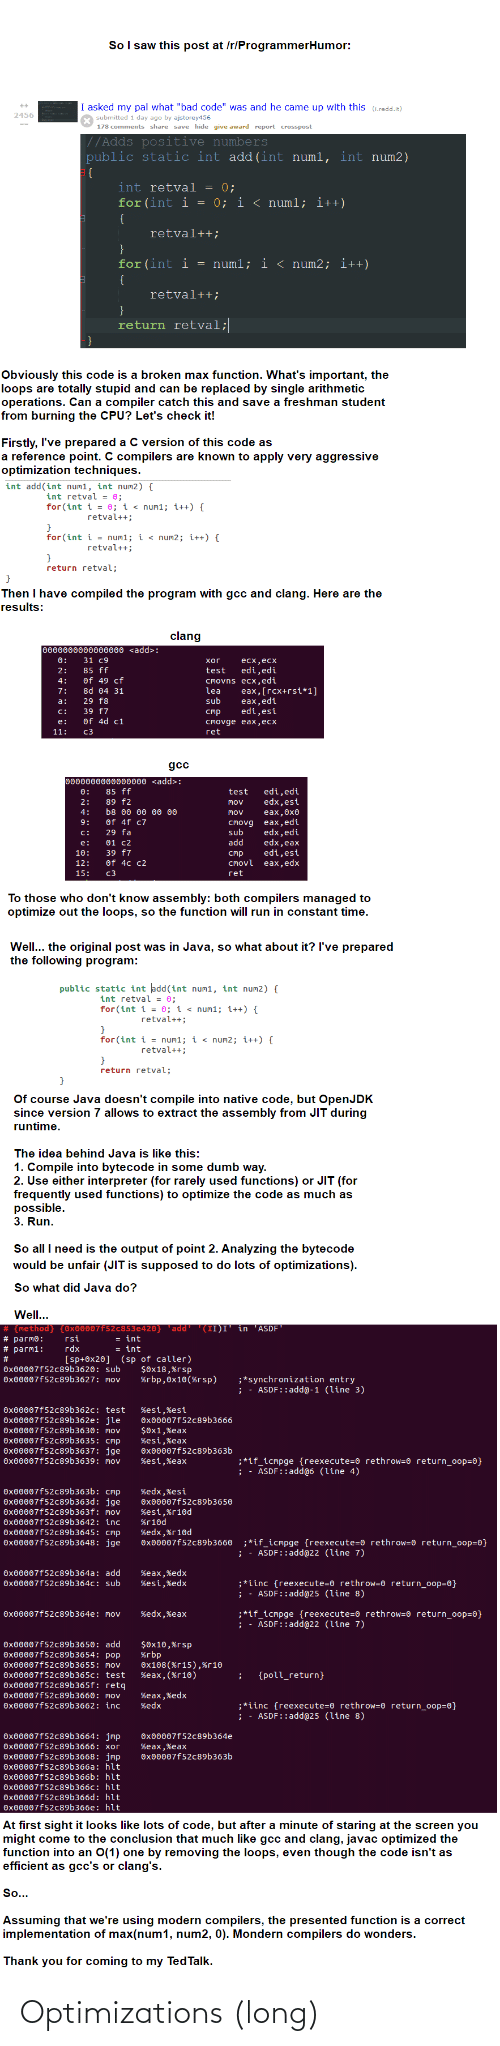 """Compiled: So I saw this post at /r/ProgrammerHumor:  I asked my pal what """"bad code"""" was and he came up with this (i.redd.it)  2456  submitted 1 day ago by ajstorey456  178 comments share save hide give award report crosspost  //Adds positive numbers  public static int add (int numl, int num2)  {  int retval = 0;  for (int i = 0; i < numl; i++)  {  retval++;  for (int i = numl; i < num2; i++)  {  retval++;  return retval;  Obviously this code is a broken max function. What's important, the  loops are totally stupid and can be replaced by single arithmetic  operations. Can a compiler catch this and save a freshman student  from burning the CPU? Let's check it!  Firstly, I've prepared a C version of this code as  a reference point. C compilers are known to apply very aggressive  optimization techniques.  int add(int num1, int num2) {  int retval = 0;  for(int i = 0; i < num1; i++) {  retval++;  }  for (int i = num1; i < num2; i++) {  retval++;  return retval;  Then I have compiled the program with gcc and clang. Here are the  results:  clang  0000000000000000 <add>:  0:  31 c9  хог  есх,есх  85 ff  of 49 cf  8d 04 31  test  edi,edi  2:  Cmovns ecx,edi  lea  4:  eax,[гсх+rsi*1]  eax,edi  edi,esi  7:  29 f8  sub  a:  39 f7  of 4d c1  C:  стр  CMovge eax,ecx  ret  e:  11:  c3  gcc  0000000000000000 <add>:  0:  85 ff  edi,edi  edx,esi  eax,0x0  cmovg eax,edi  edx,edi  edx,eax  edi,esi  CMovl eax,edx  test  89 f2  2:  Mov  b8 00 Θ0 00 00  4:  Mov  Of 4f c7  9:  c:  29 fa  sub  01 C2  add  e:  39 f7  10:  стр  Of 4c c2  12:  15:  c3  ret  To those who don't know assembly: both compilers managed to  optimize out the loops, so the function will run in constant time.  Well... the original post was in Java, so what about it? l've prepared  the following program:  public static int add(int num1, int num2) {  int retval = 0;  for (int i = 0; i < num1; i++) {  retval++;  }  for (int i = num1; i < num2; i++) {  retval++;  return retval;  Of course Java doesn't compile into native co"""